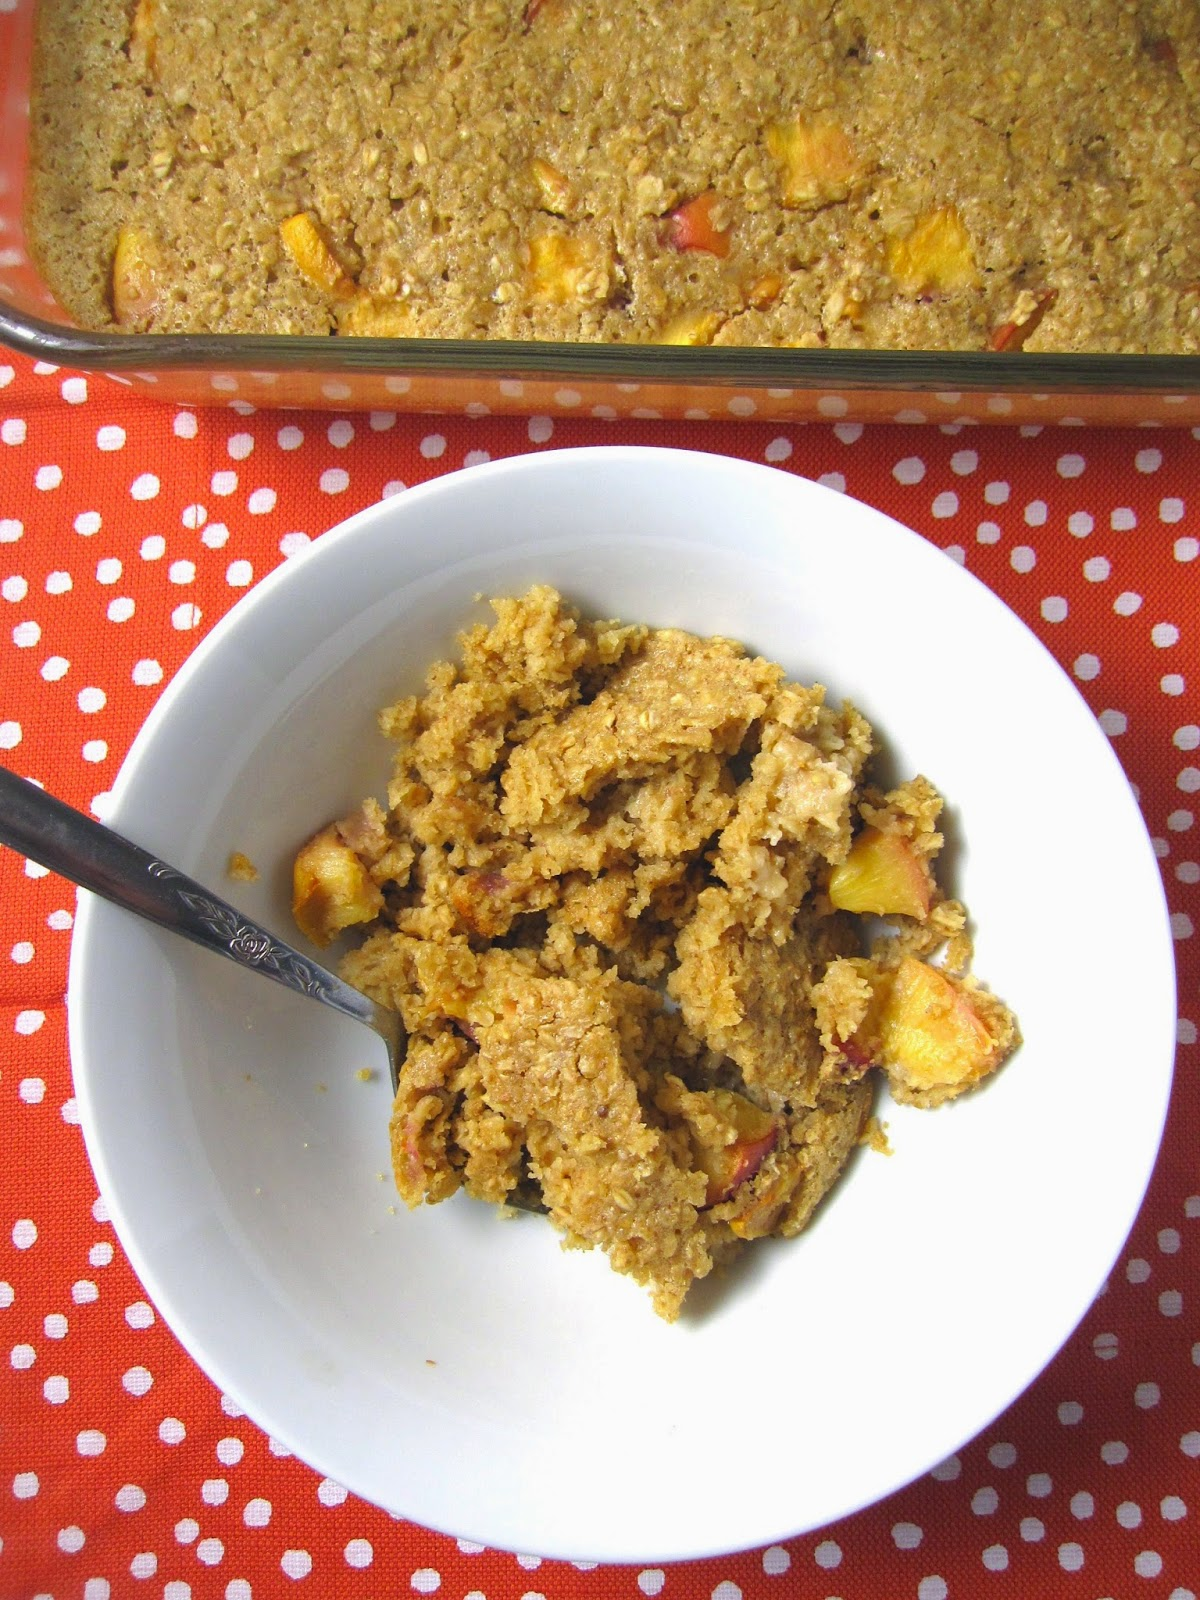 Ginger Nectarine Baked Oatmeal. Fall summer healthy vegetarian breakfast